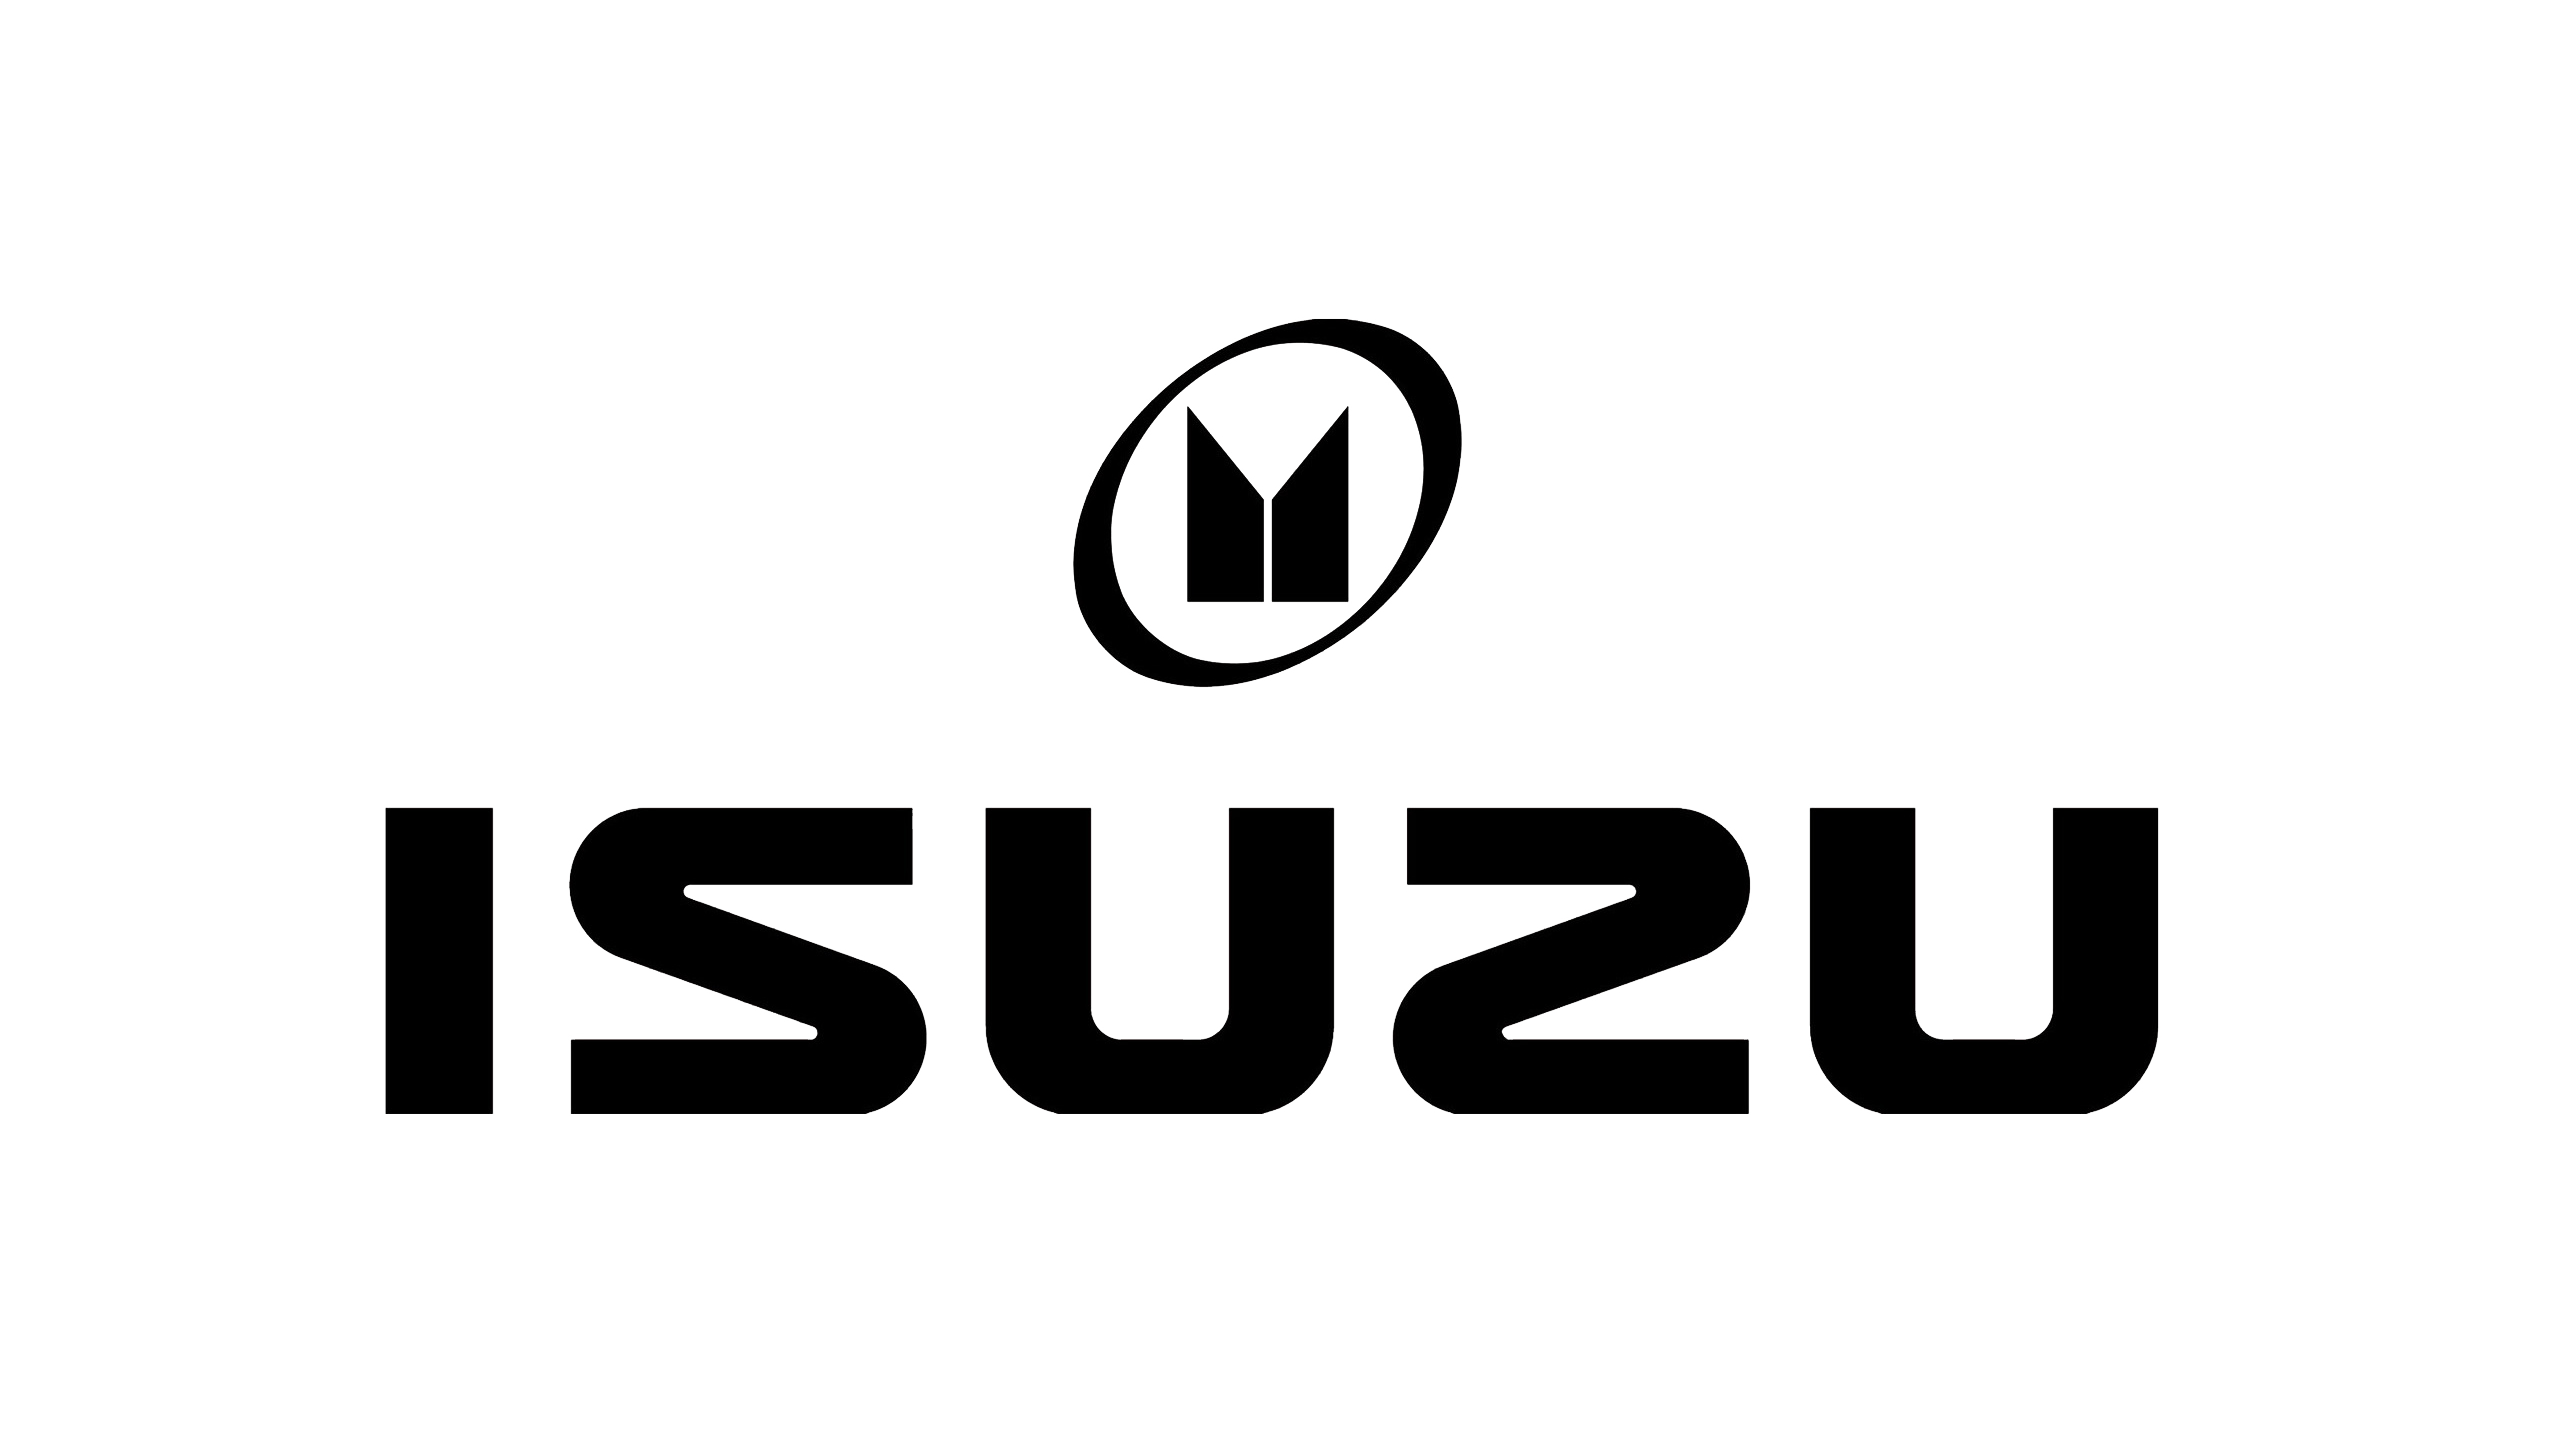 Isuzu Logo Hd Meaning Information